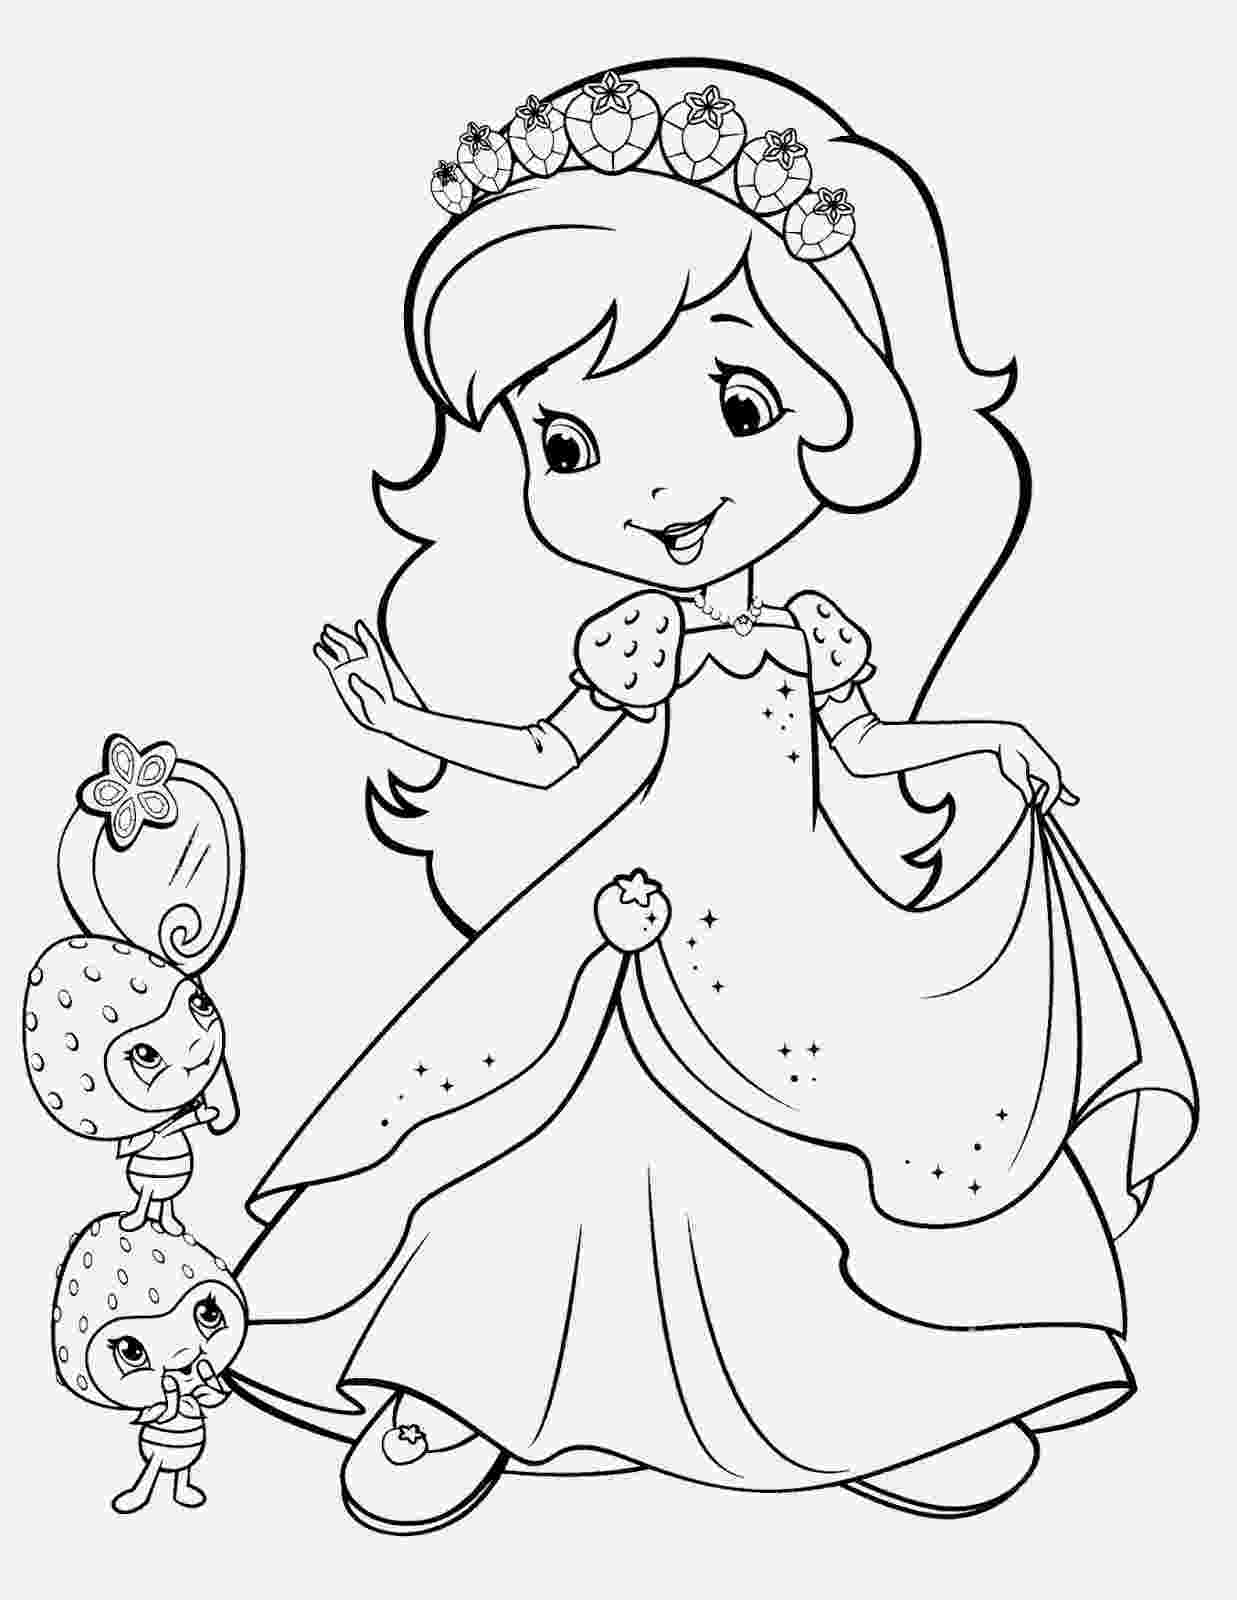 strawberry shortcake coloring pictures strawberry shortcake coloring pages getcoloringpagescom pictures strawberry shortcake coloring